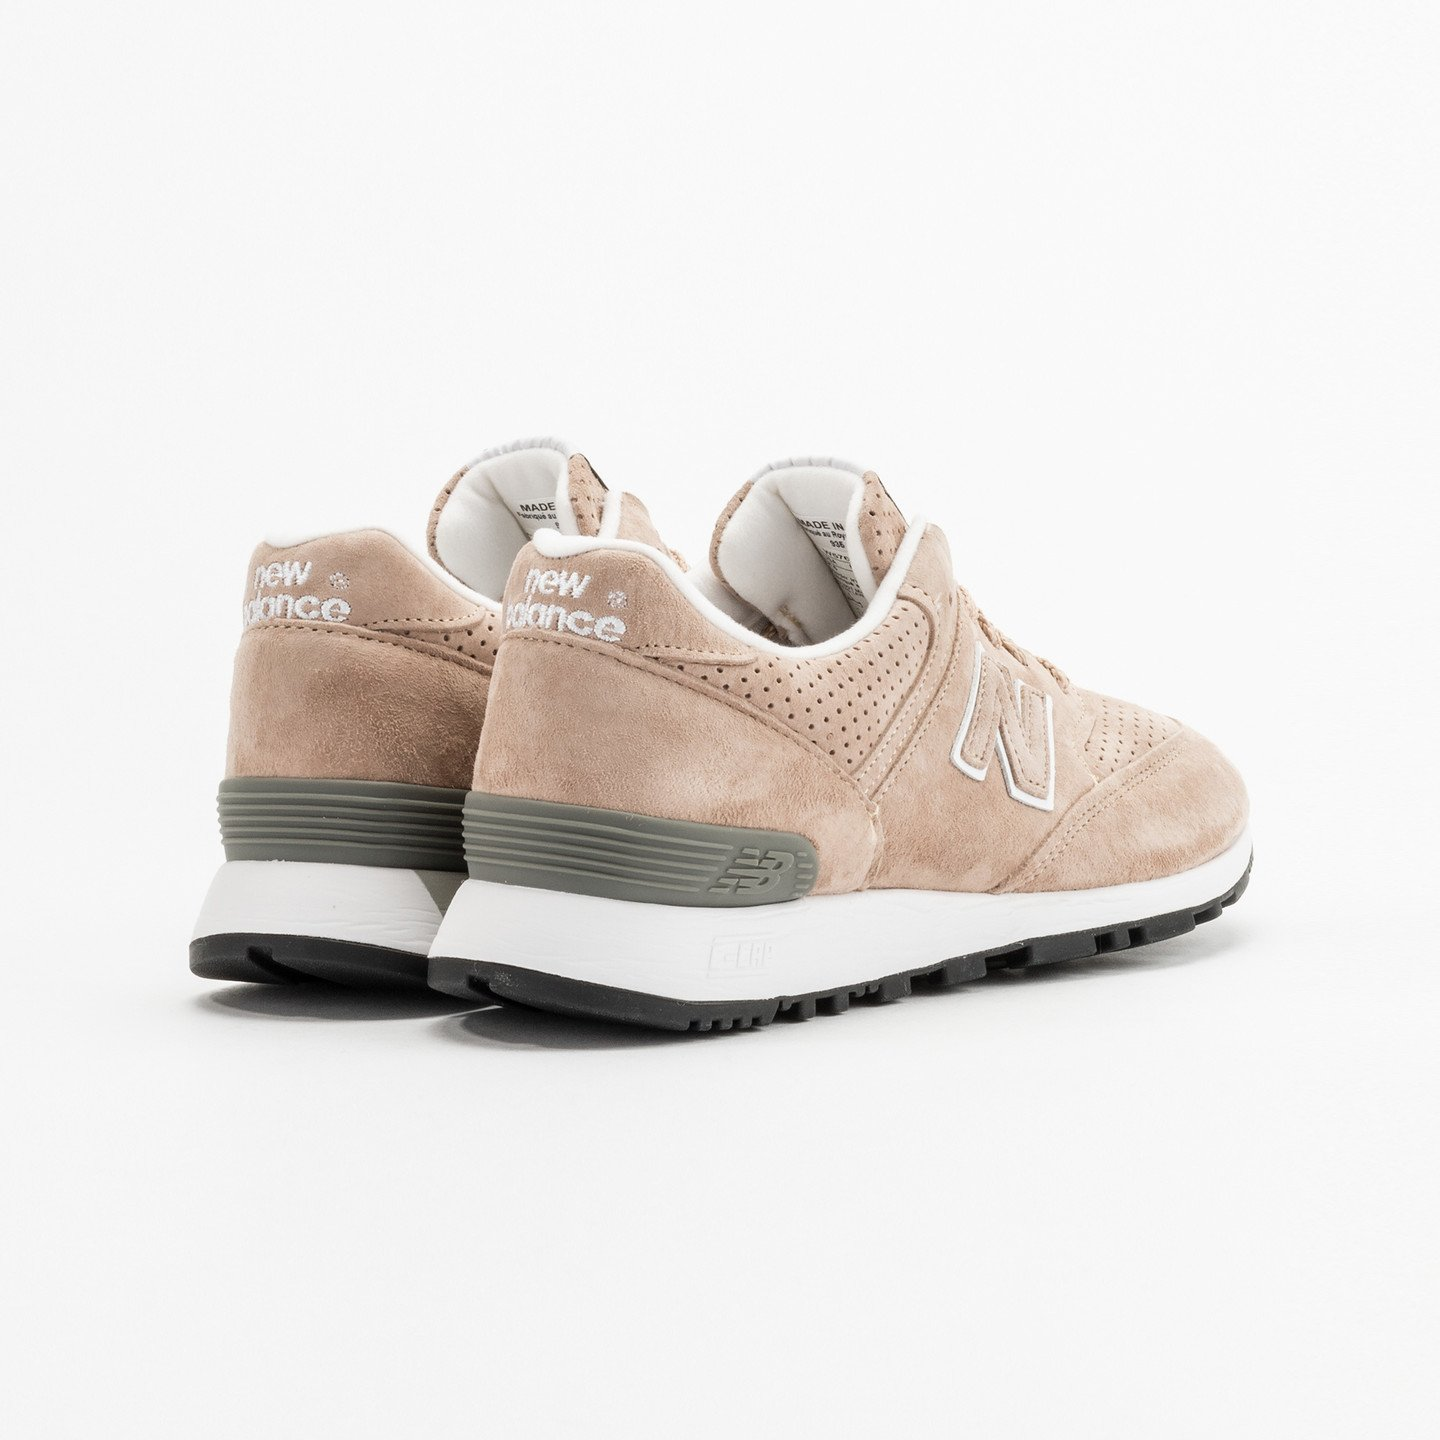 New Balance W576 TTO - Made in UK Light Brown / White W576TTO-40.5